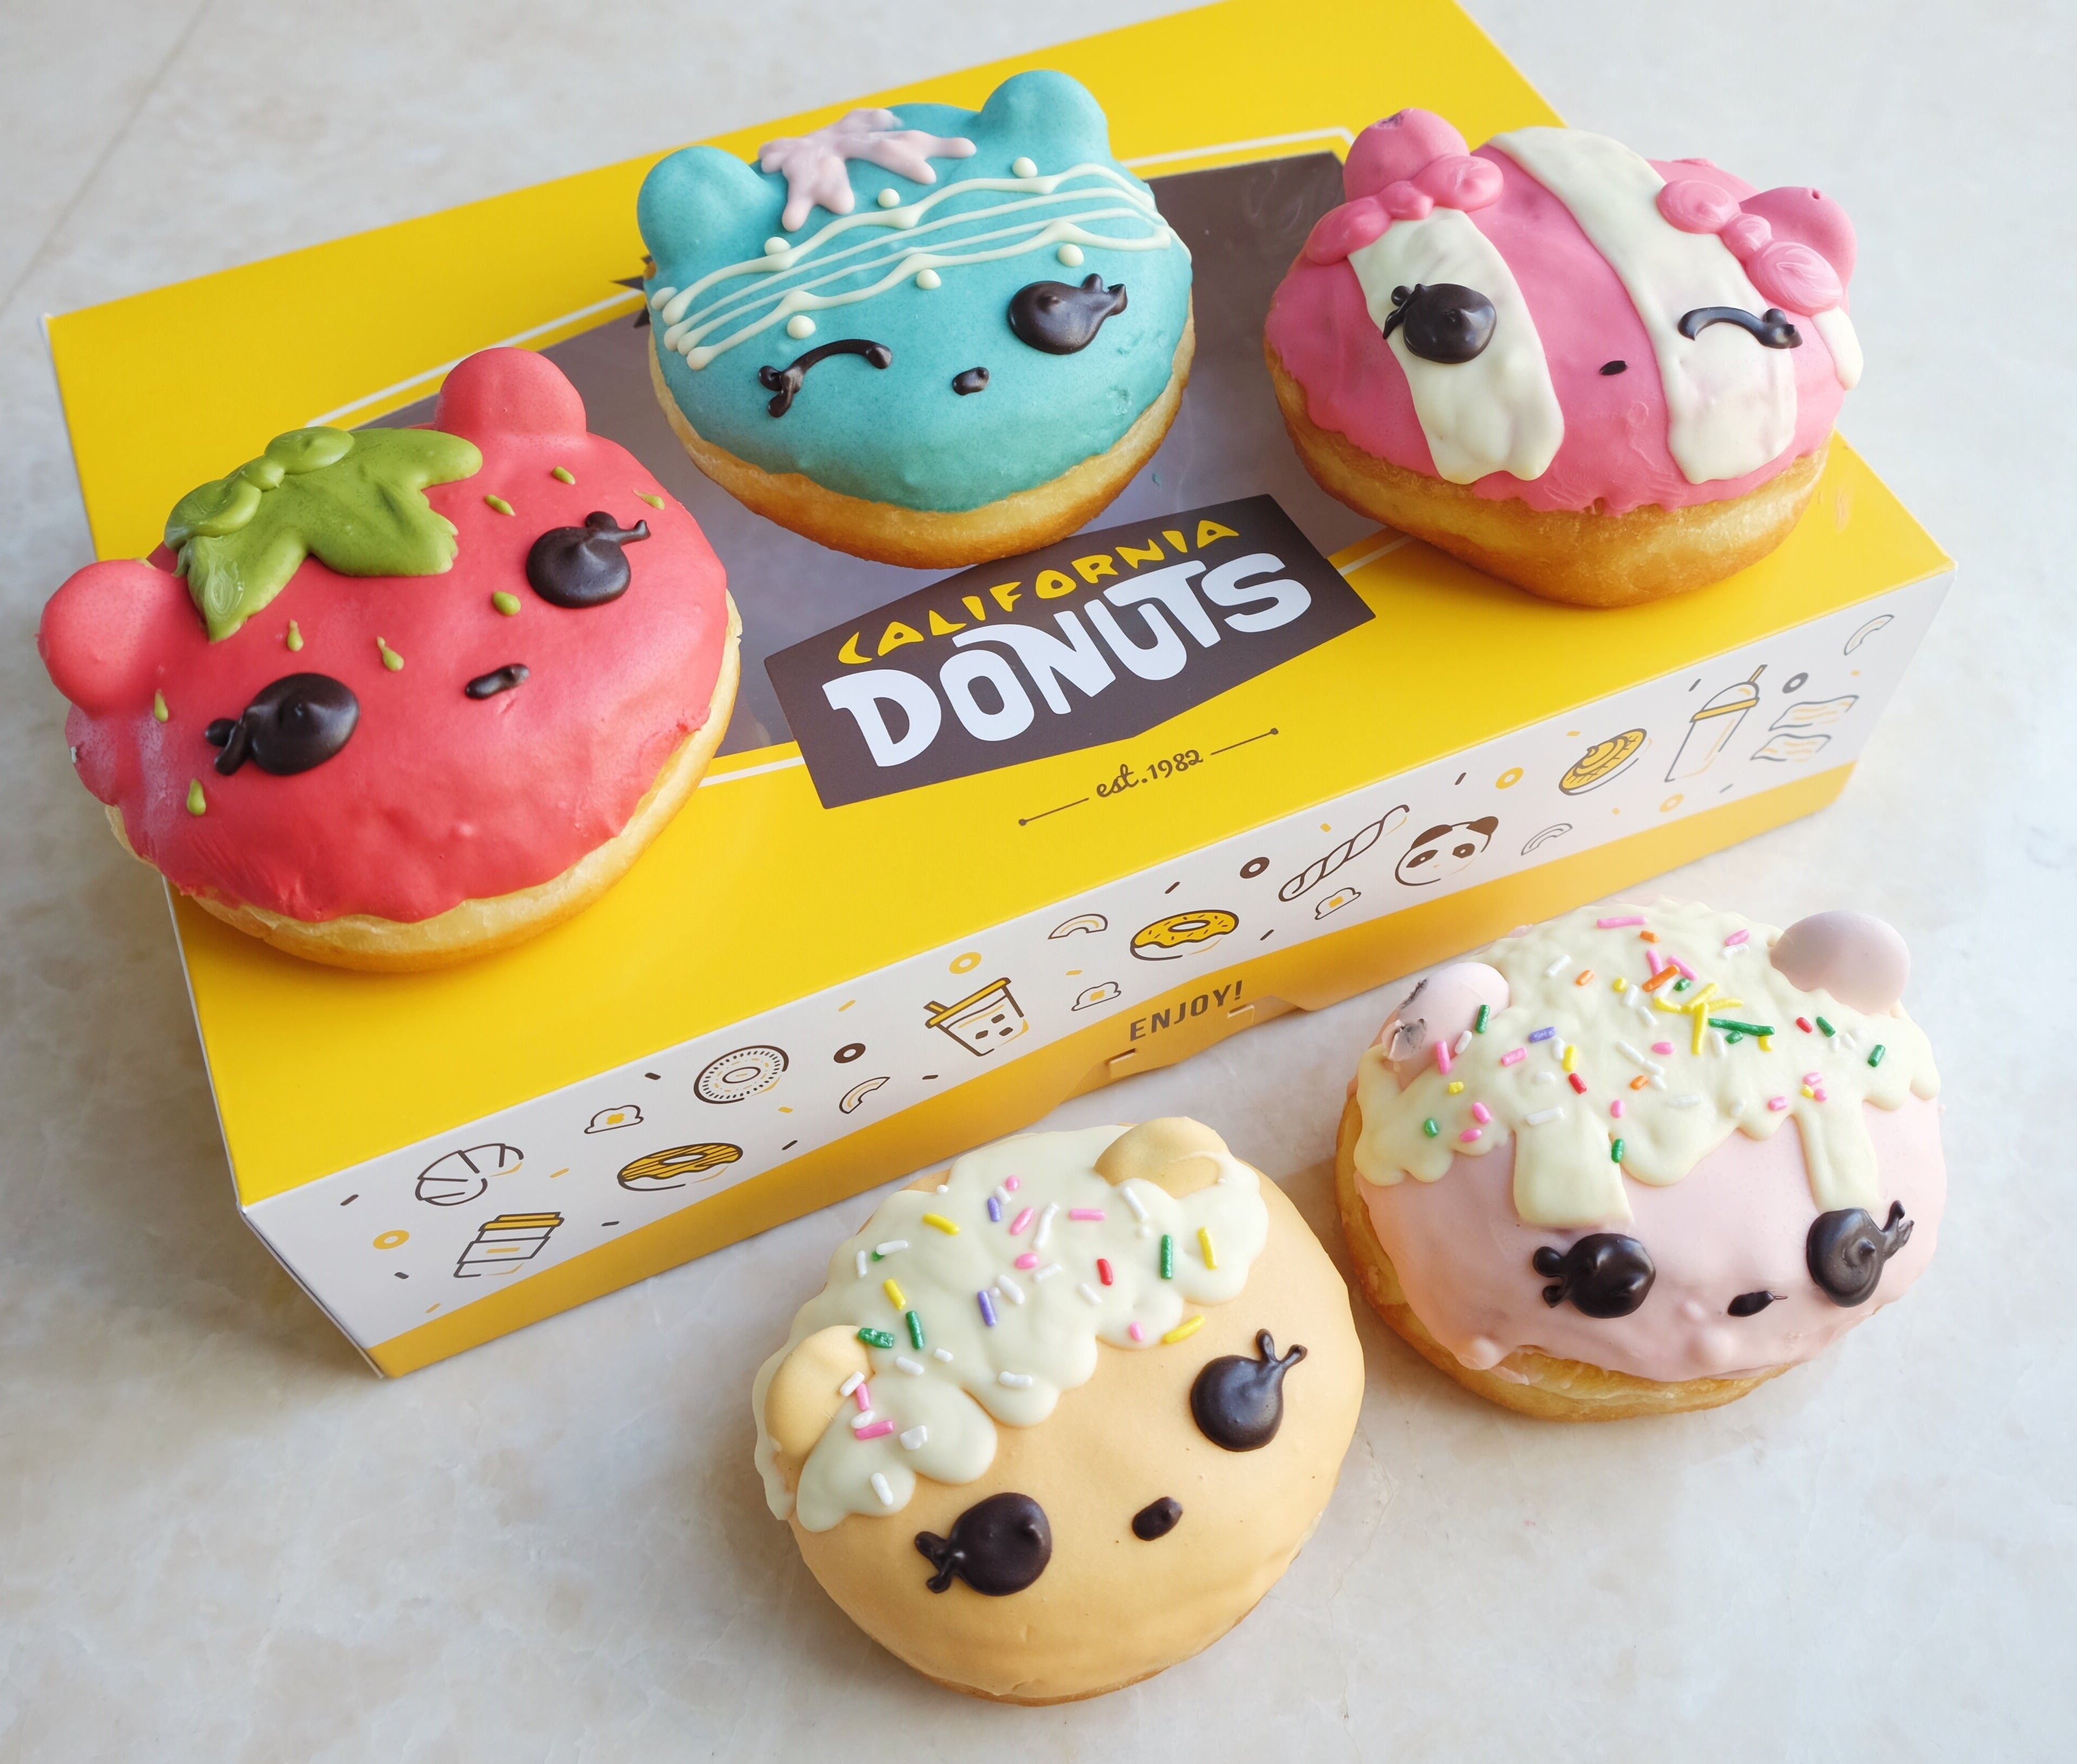 Limited Offer: California Donuts x Num Noms Treat + Free Toy